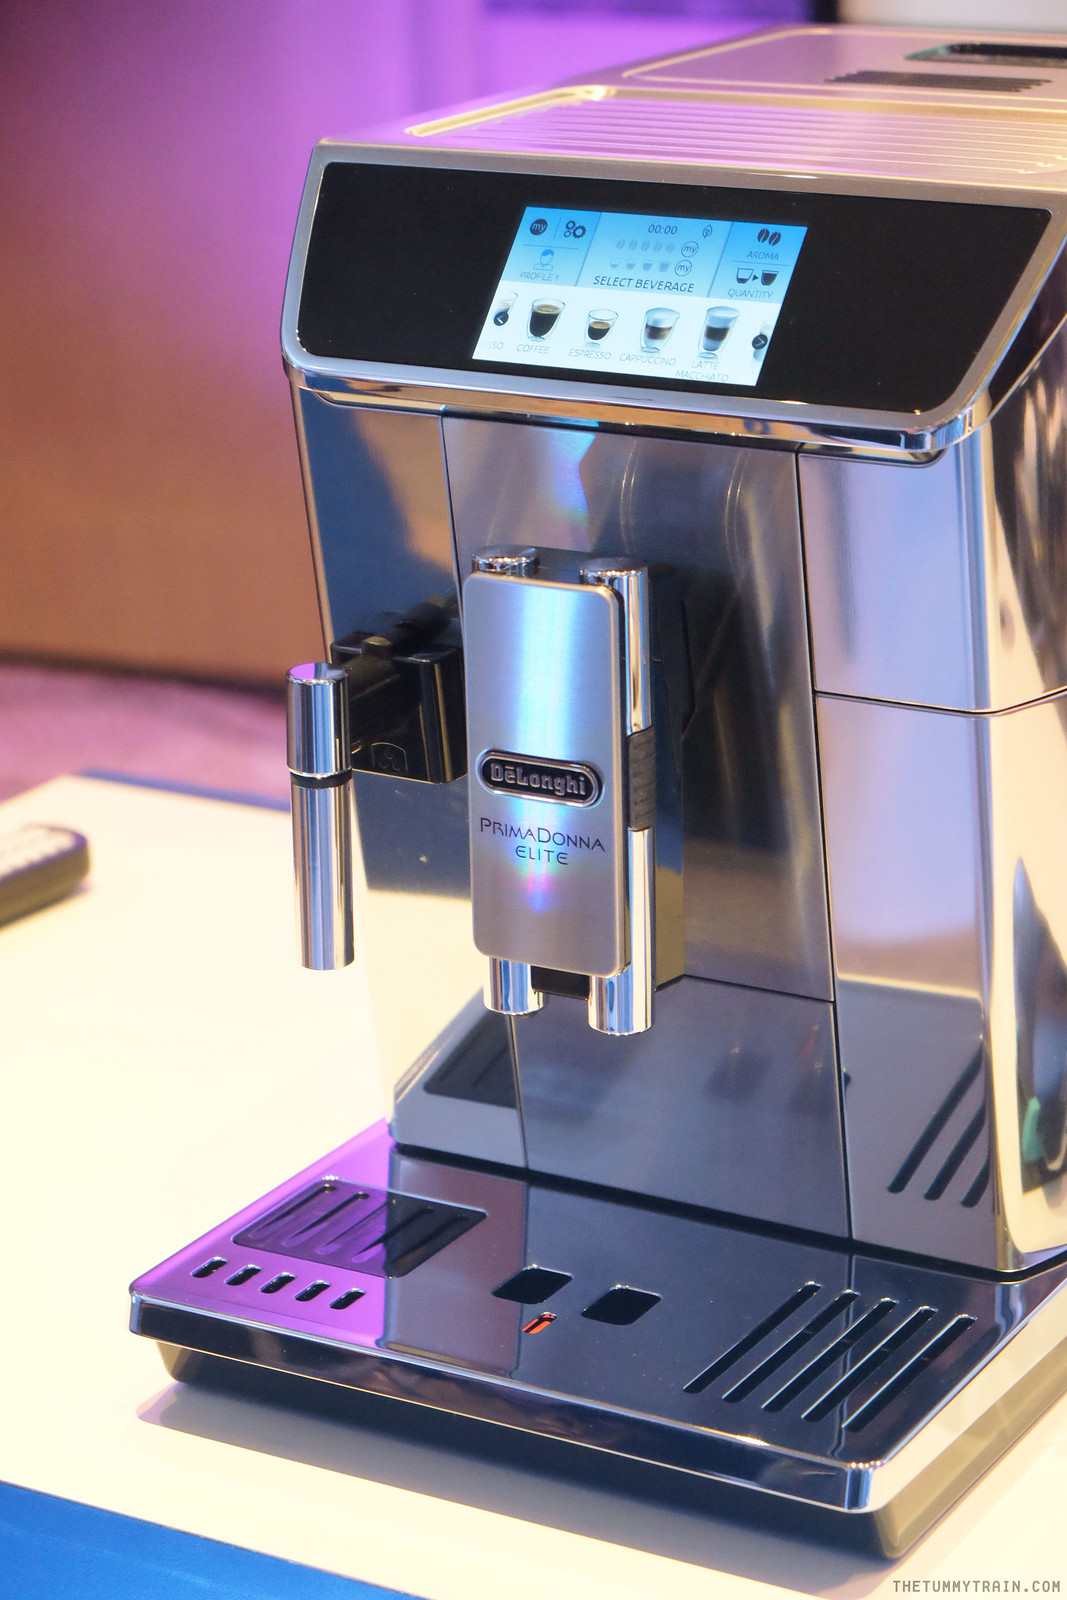 28337168632 51b95ebe06 h - DeLonghi PrimaDonna Elite puts coffee making at the palm of your hand